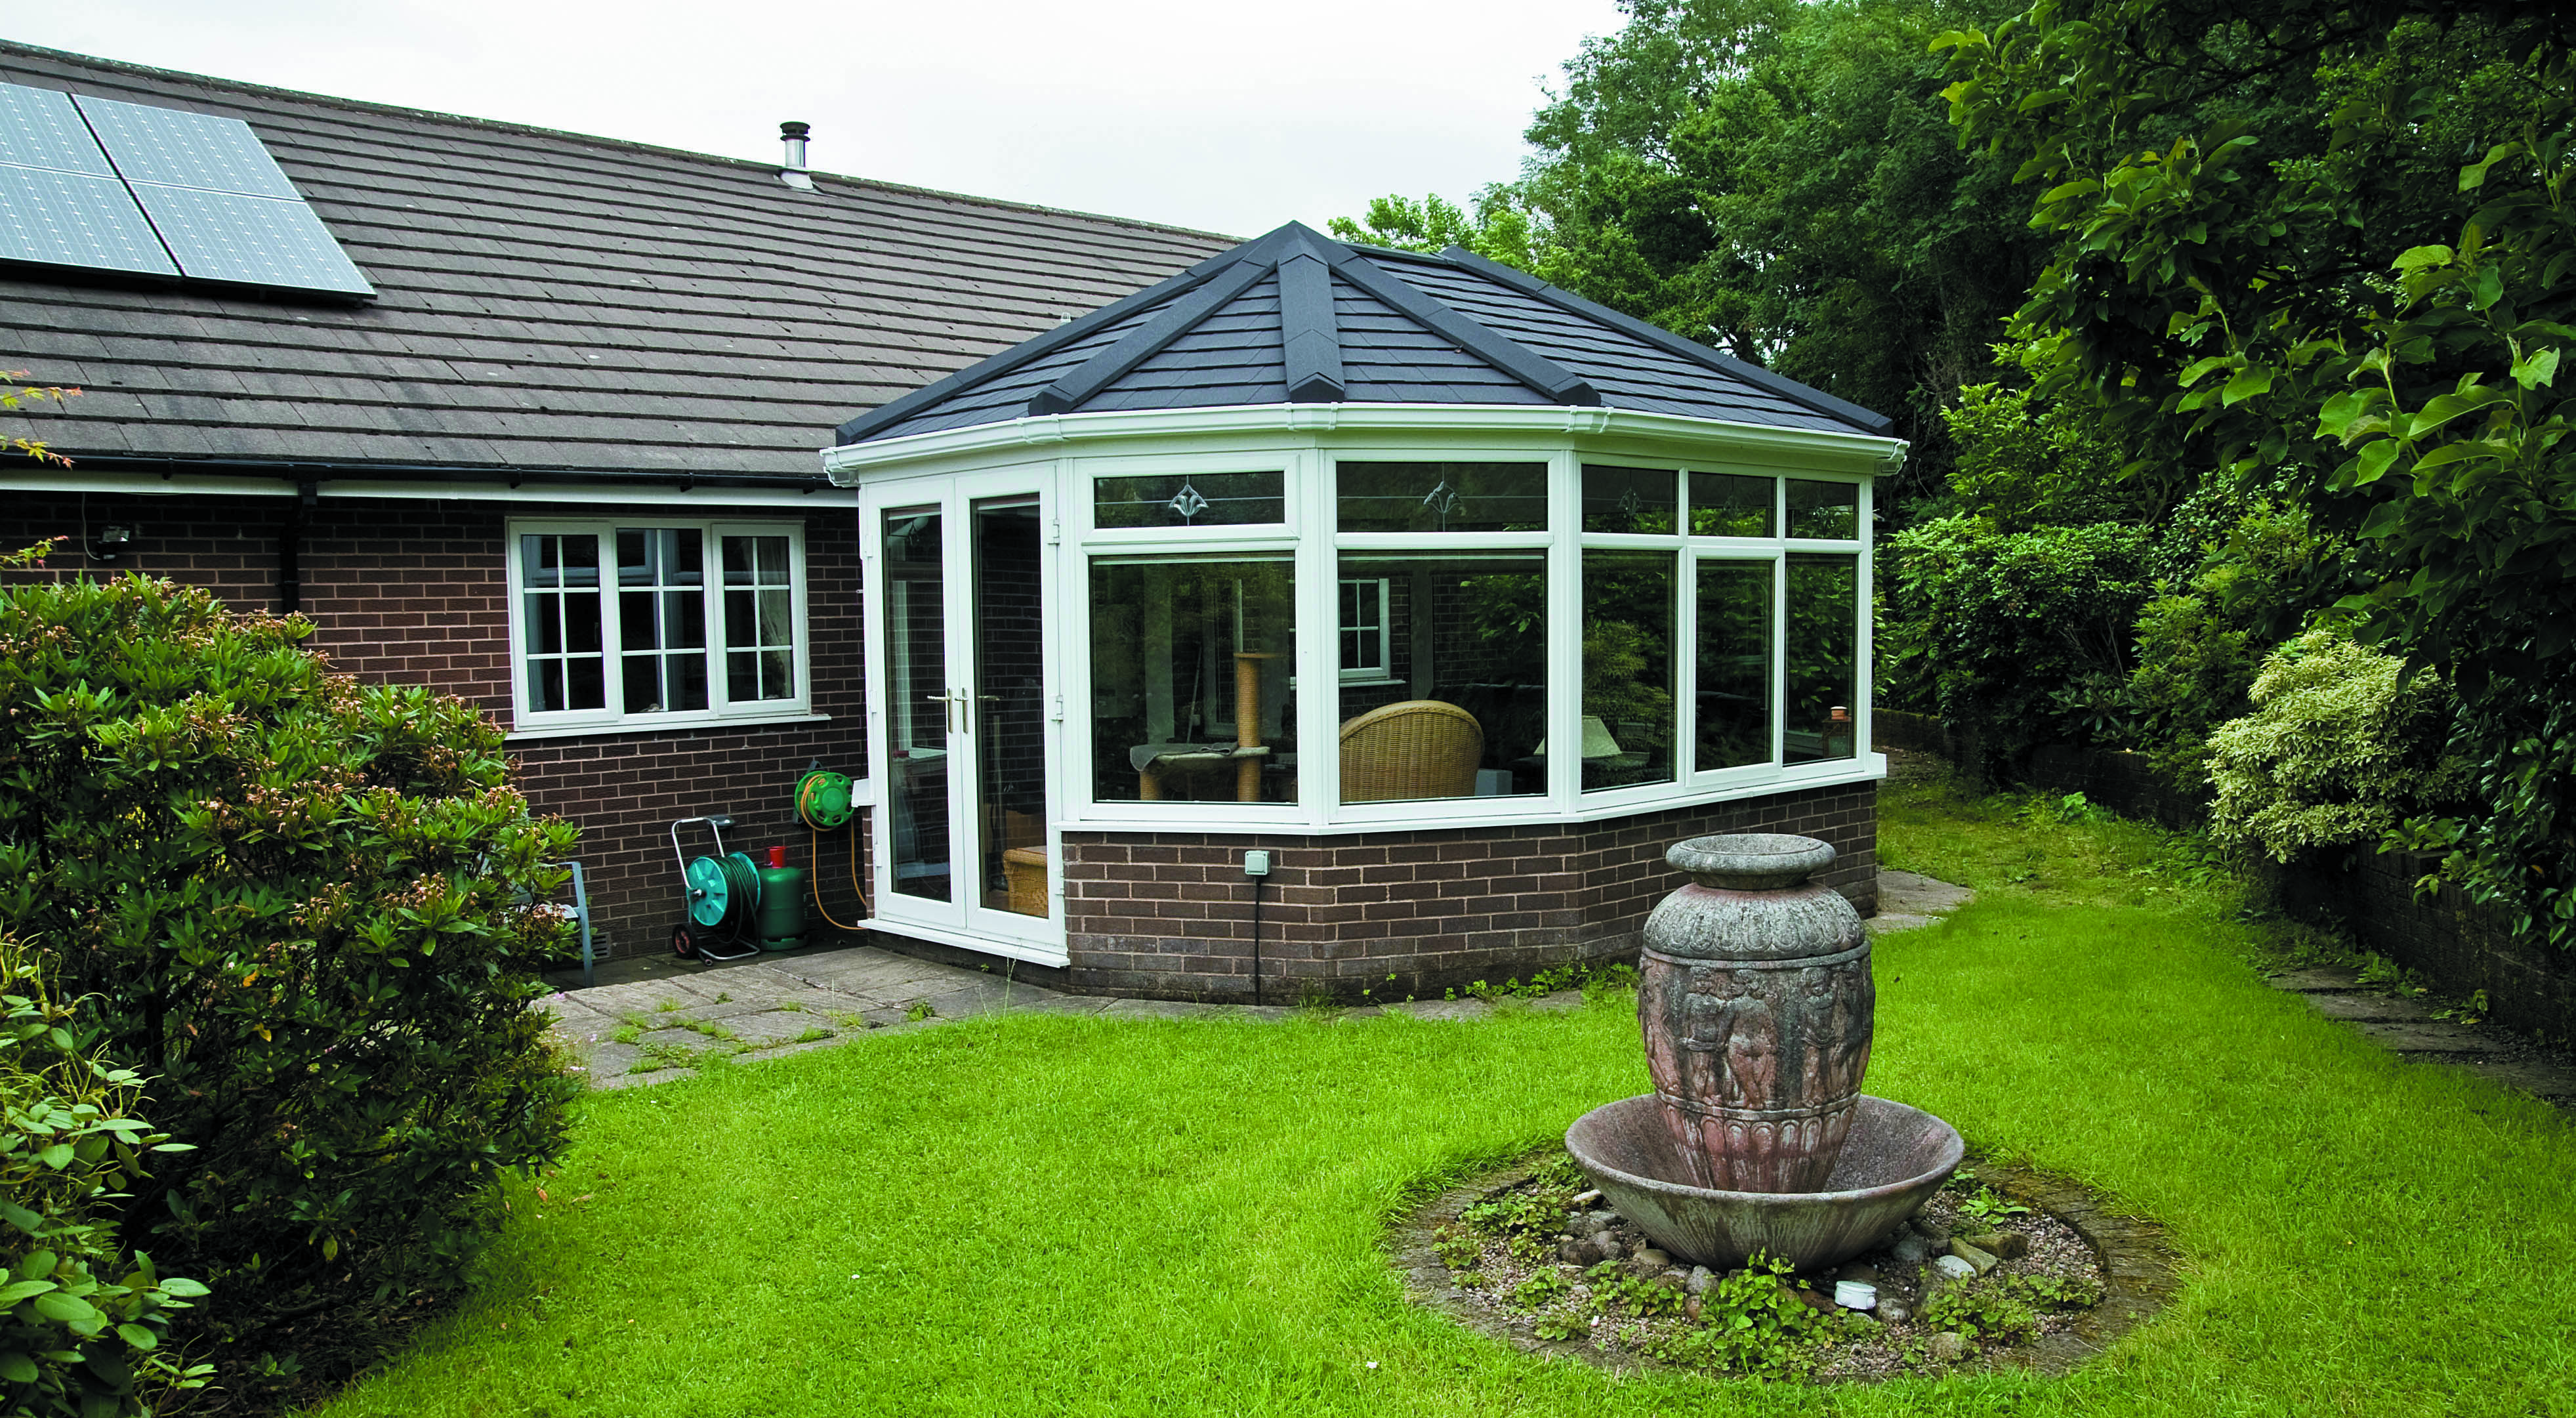 Another Good Looking Conservatory Attached To A Bungalow